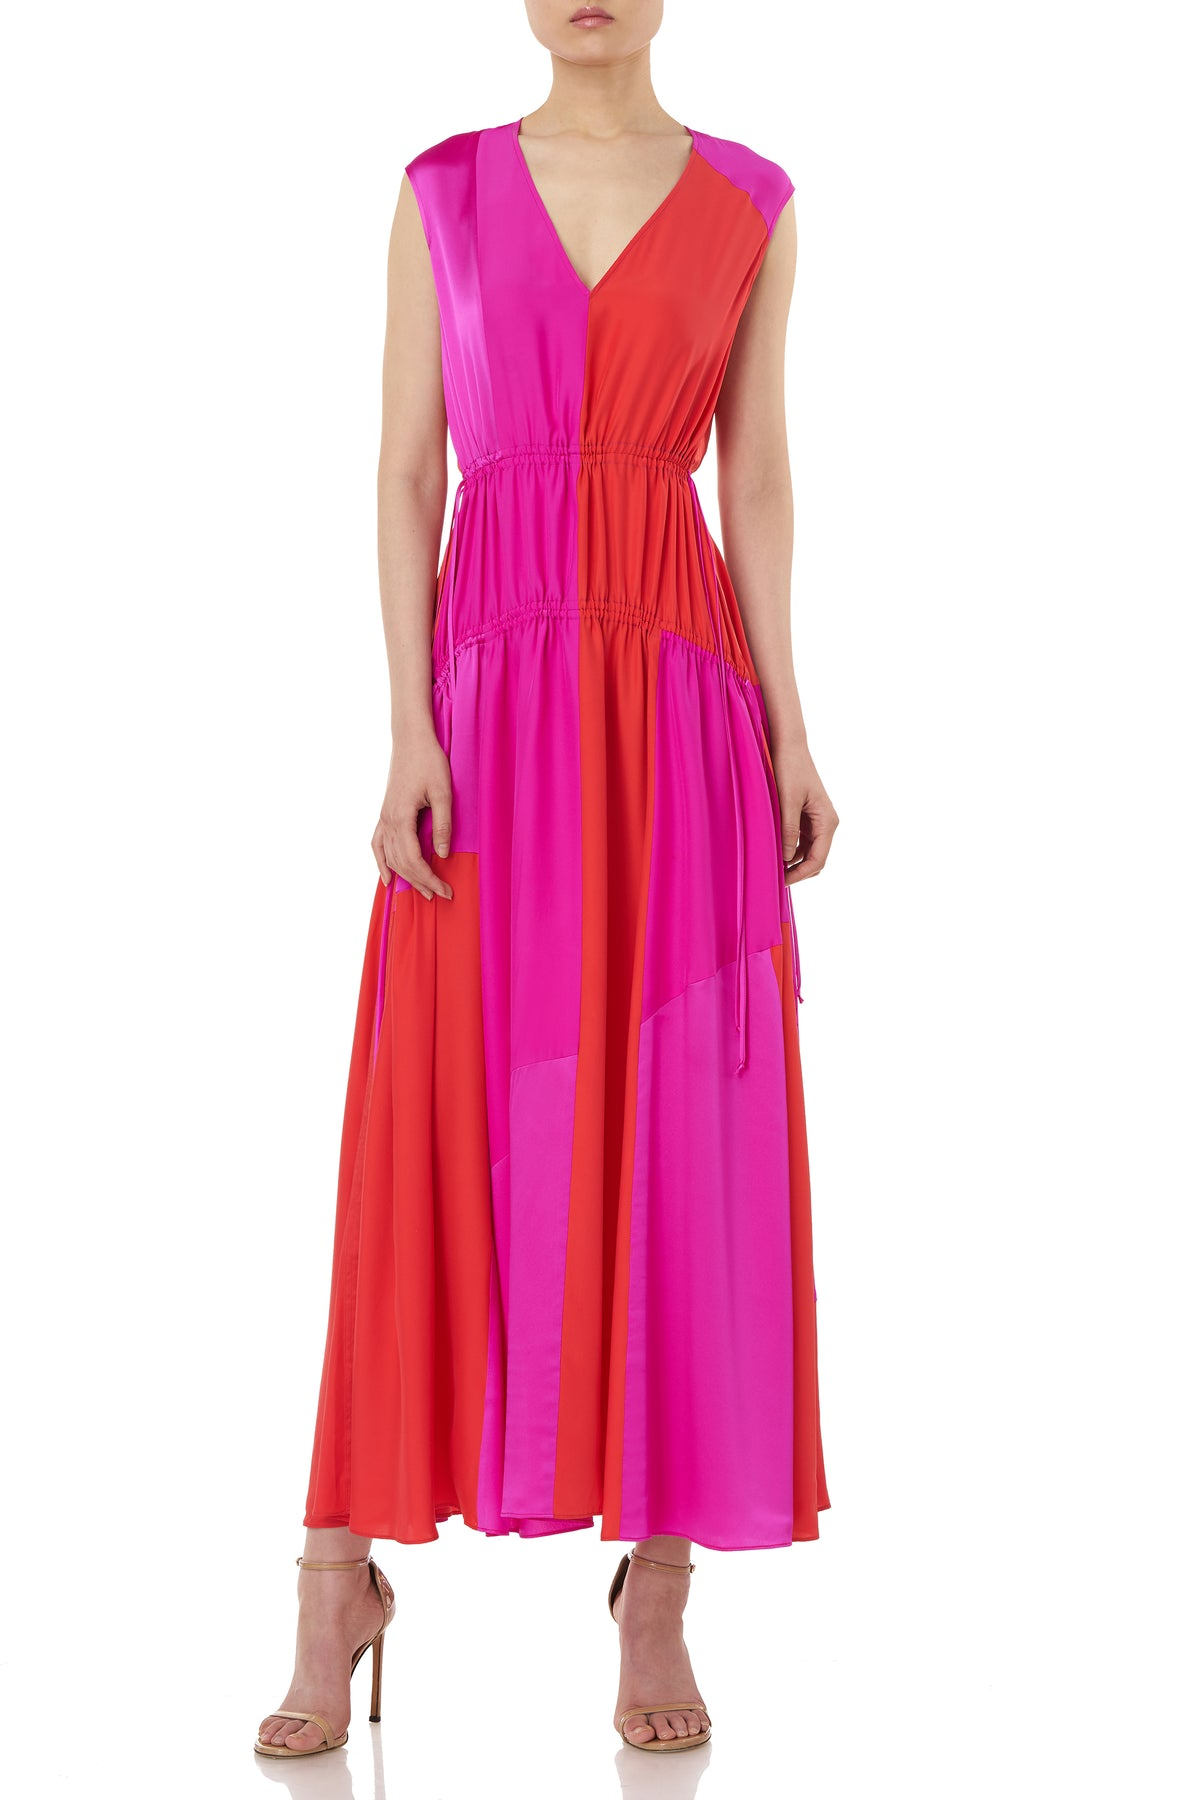 Lotta Dress in Fuschia & Poppy Red